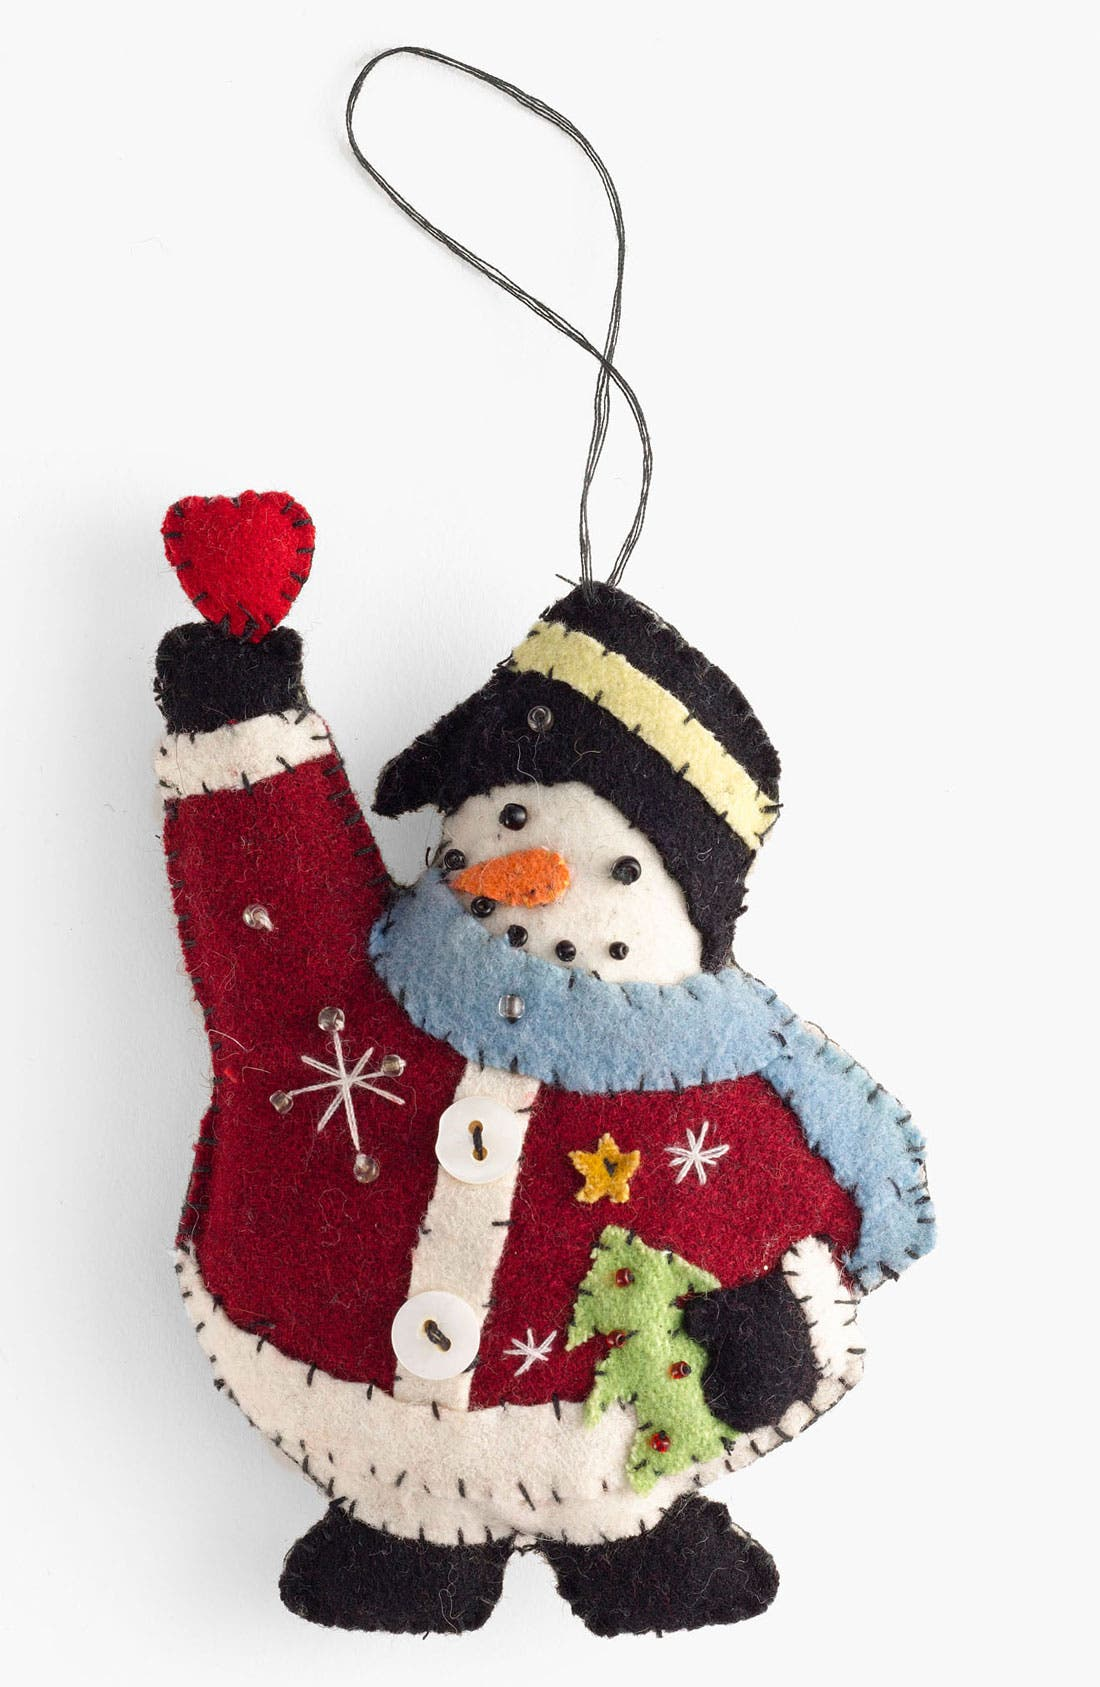 Alternate Image 1 Selected - New World Arts 'Puffy Snowman' Ornament